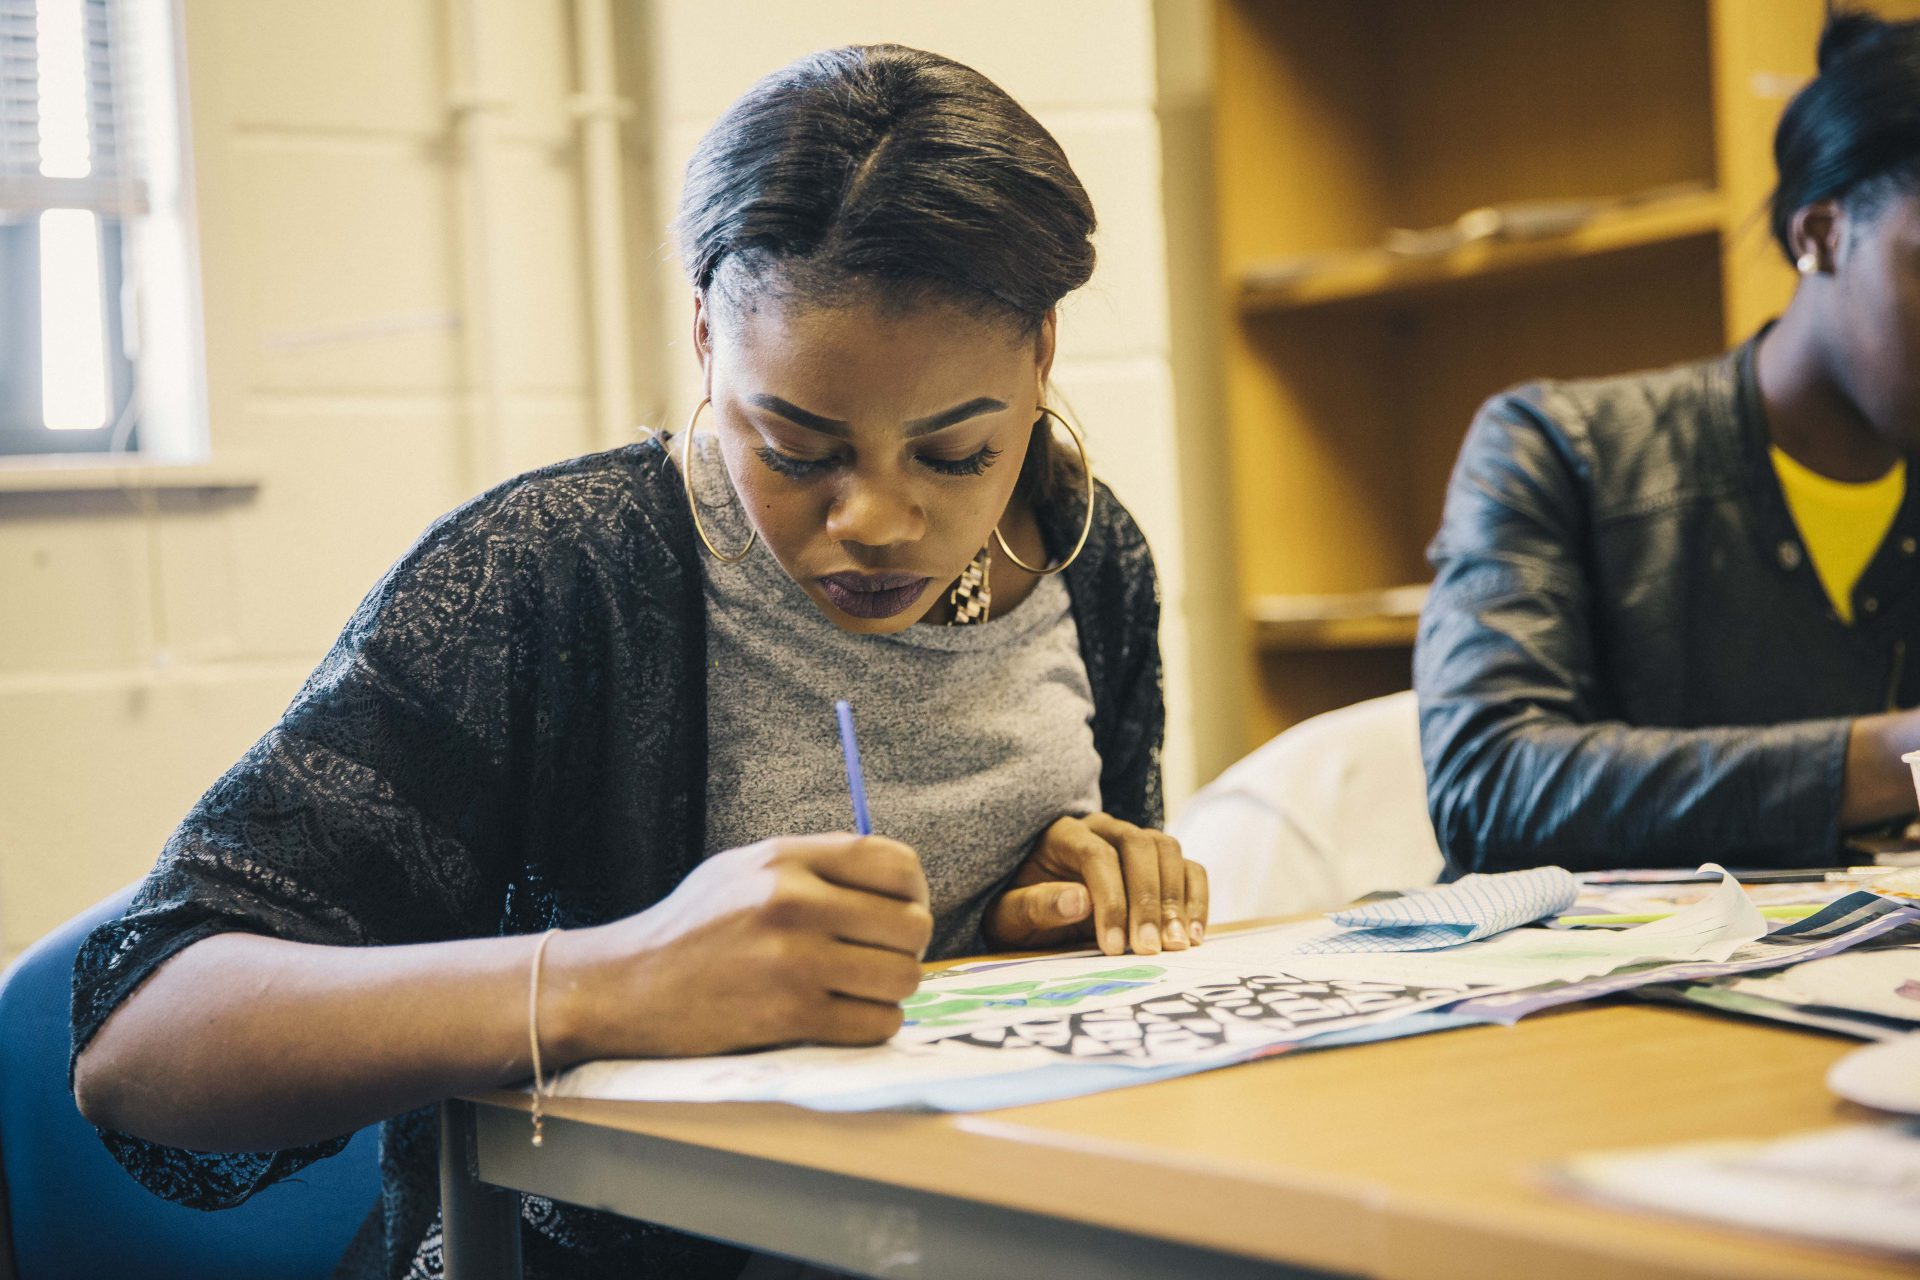 Childcare student, Adama Sesay studies at a desk